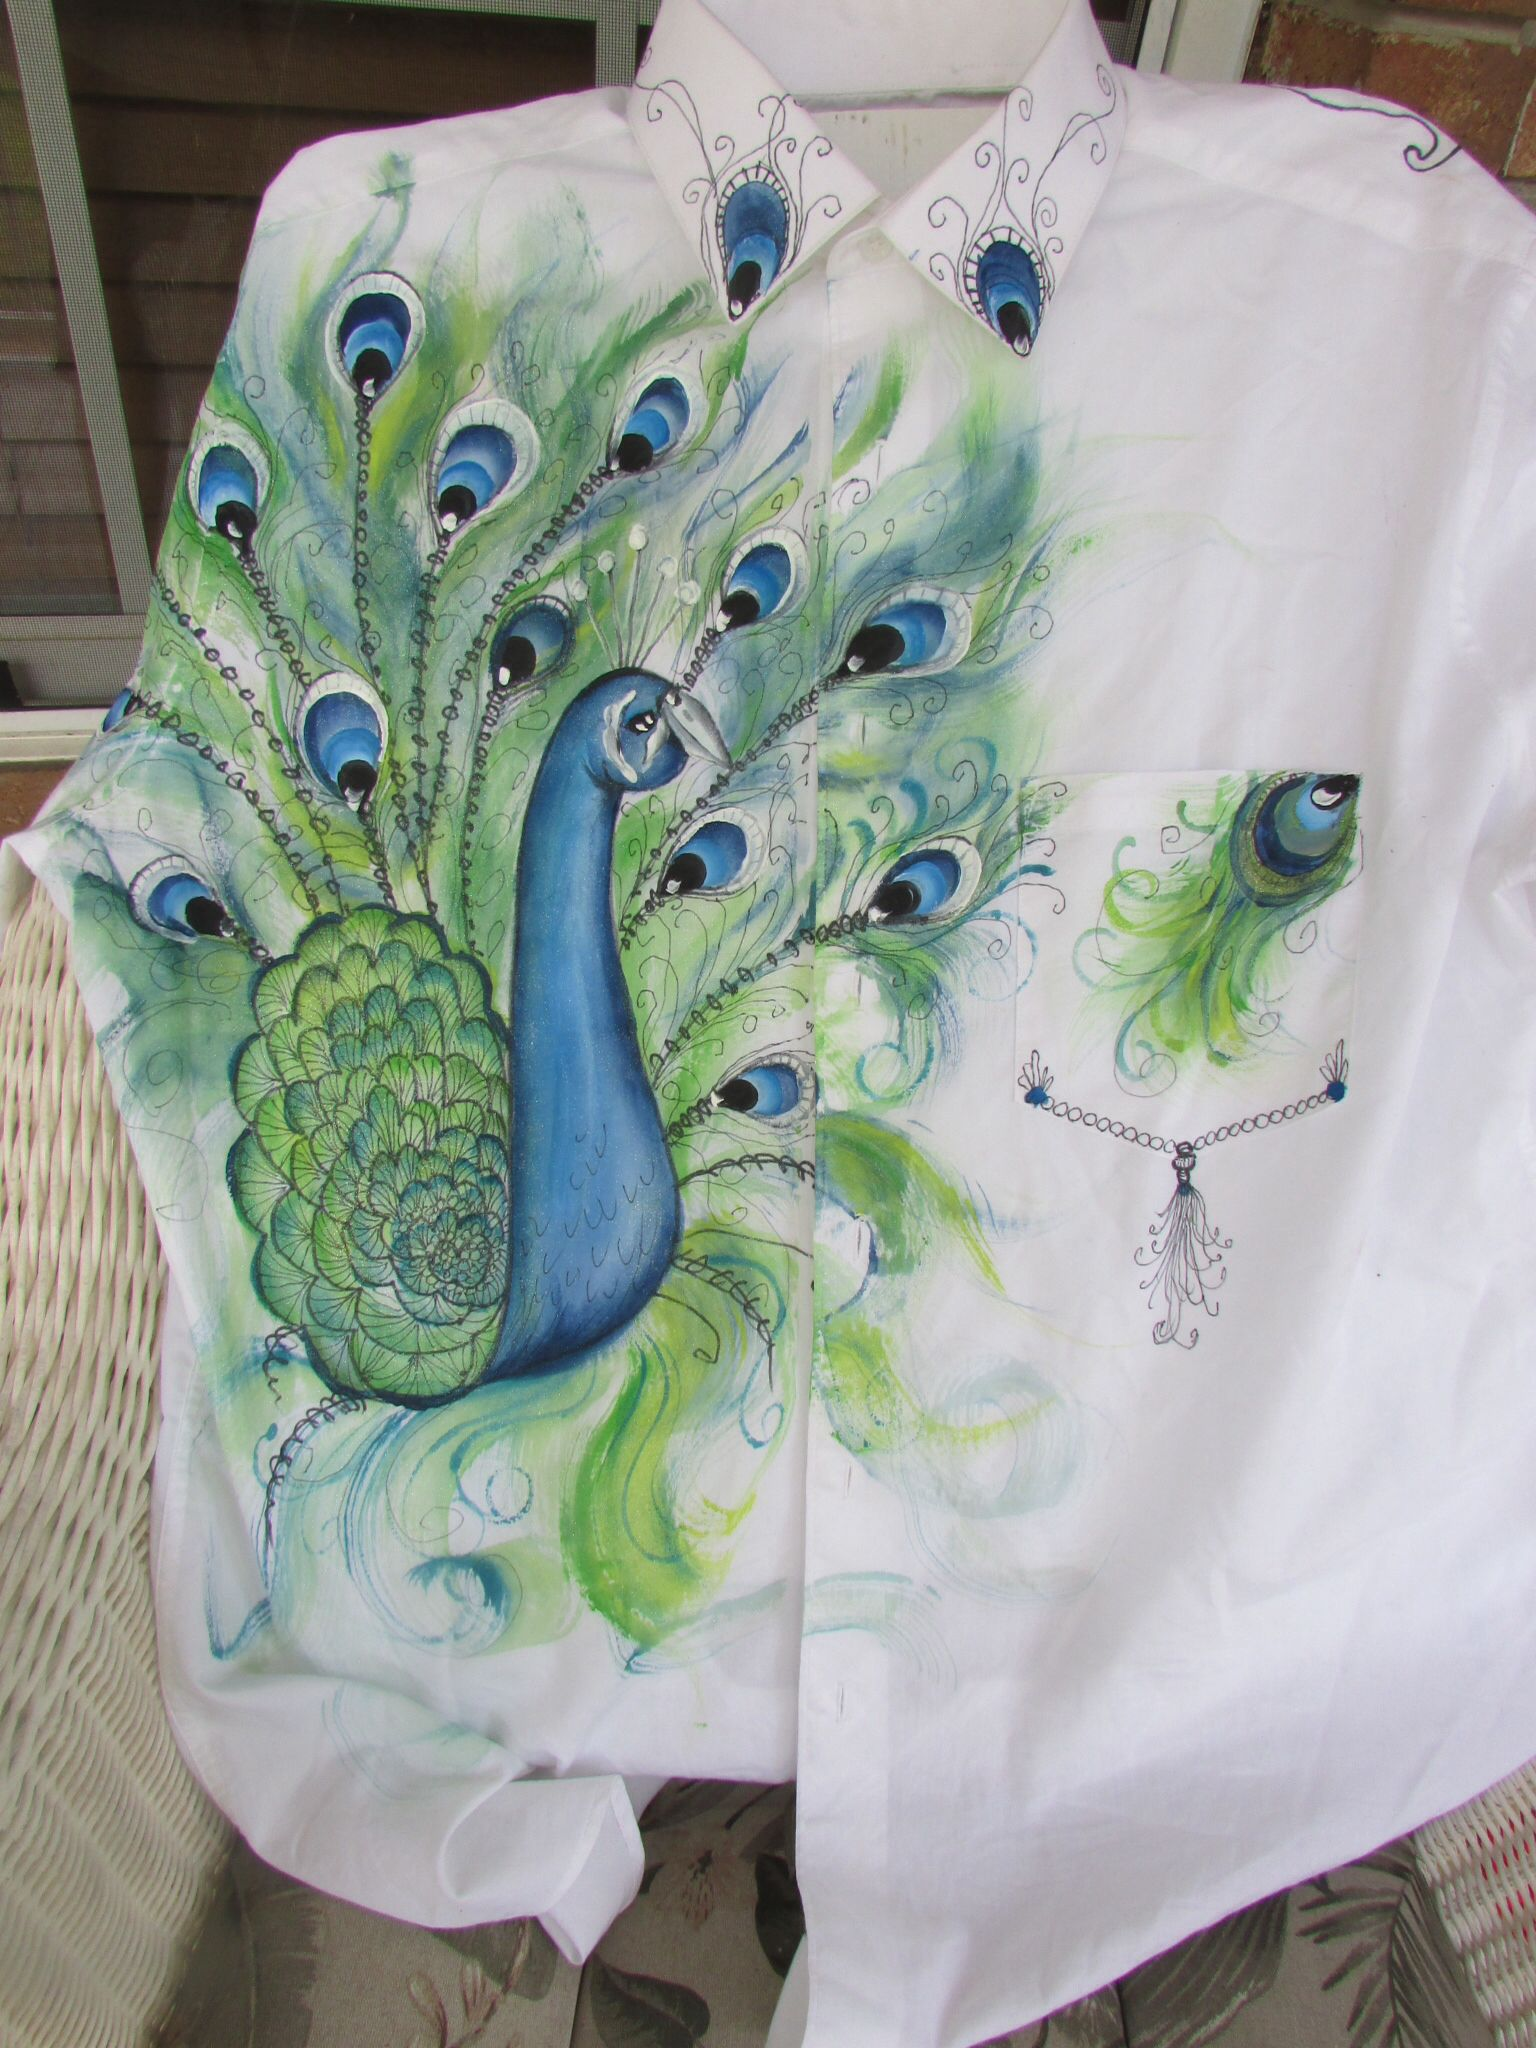 Shirt design with fabric paint - Peacock Packet For Shirt Design An Patterns Www Onestroke Com Painting Patternsfabric